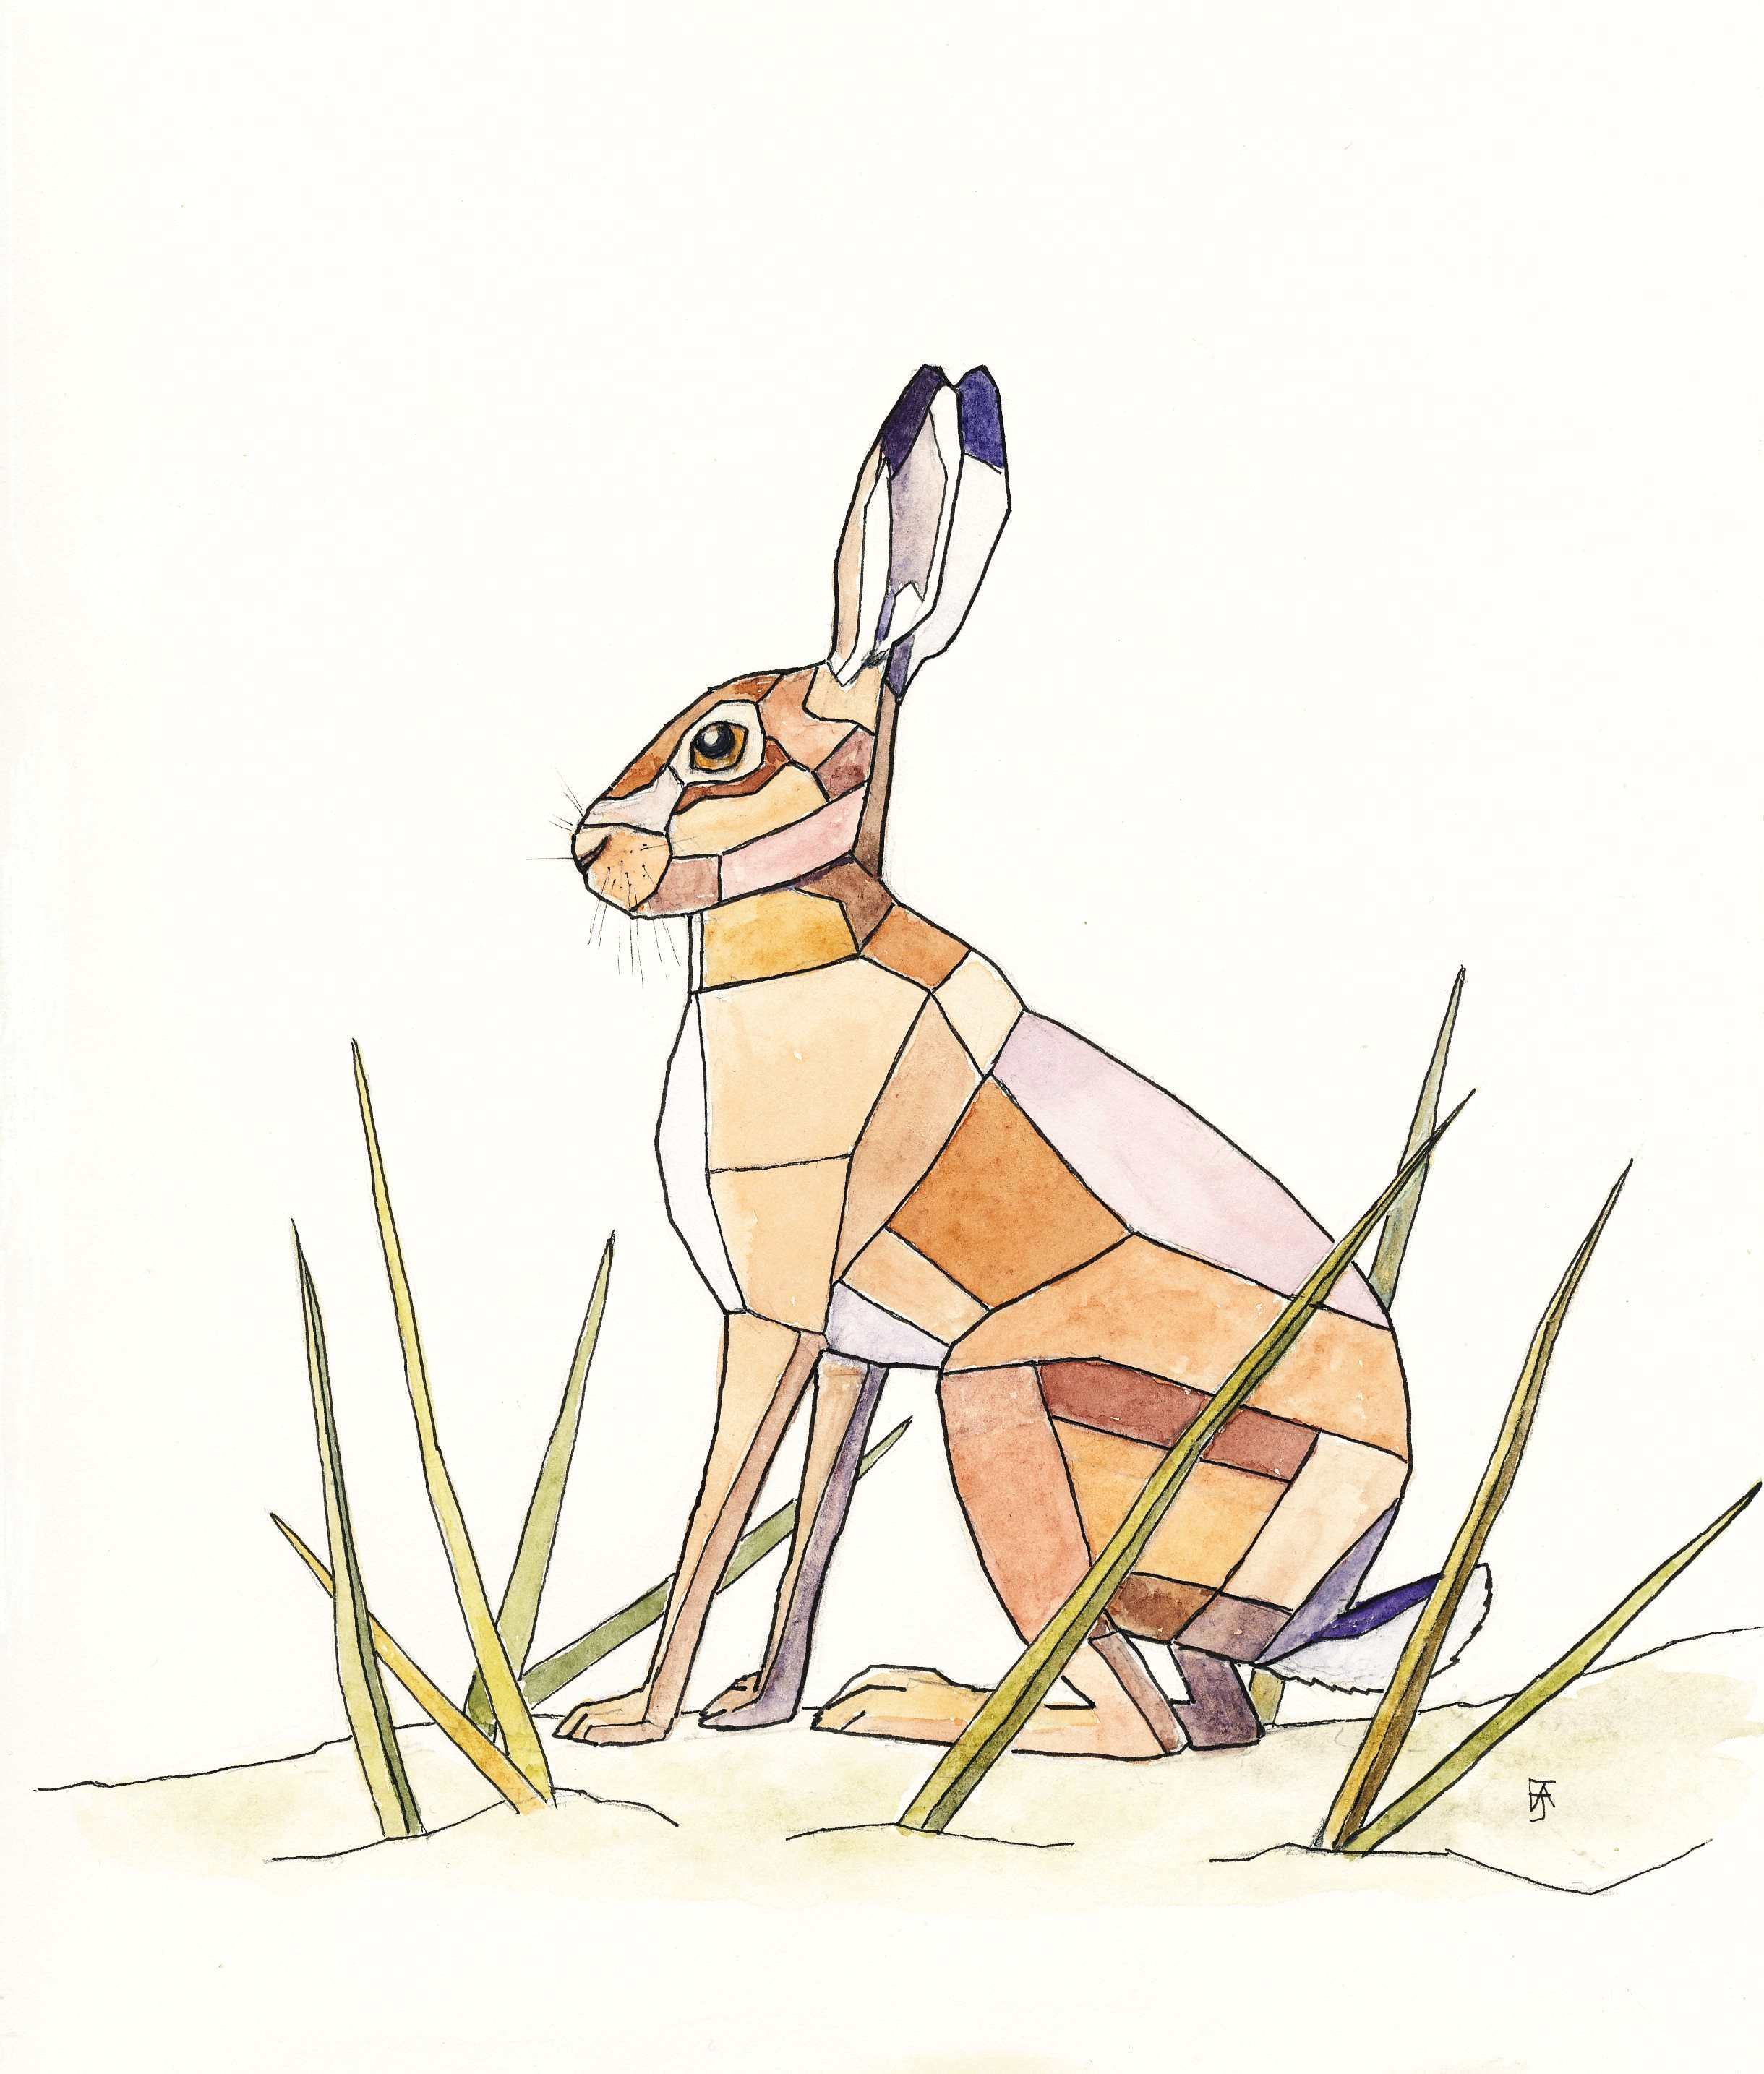 Stained glass hare F A Jackson